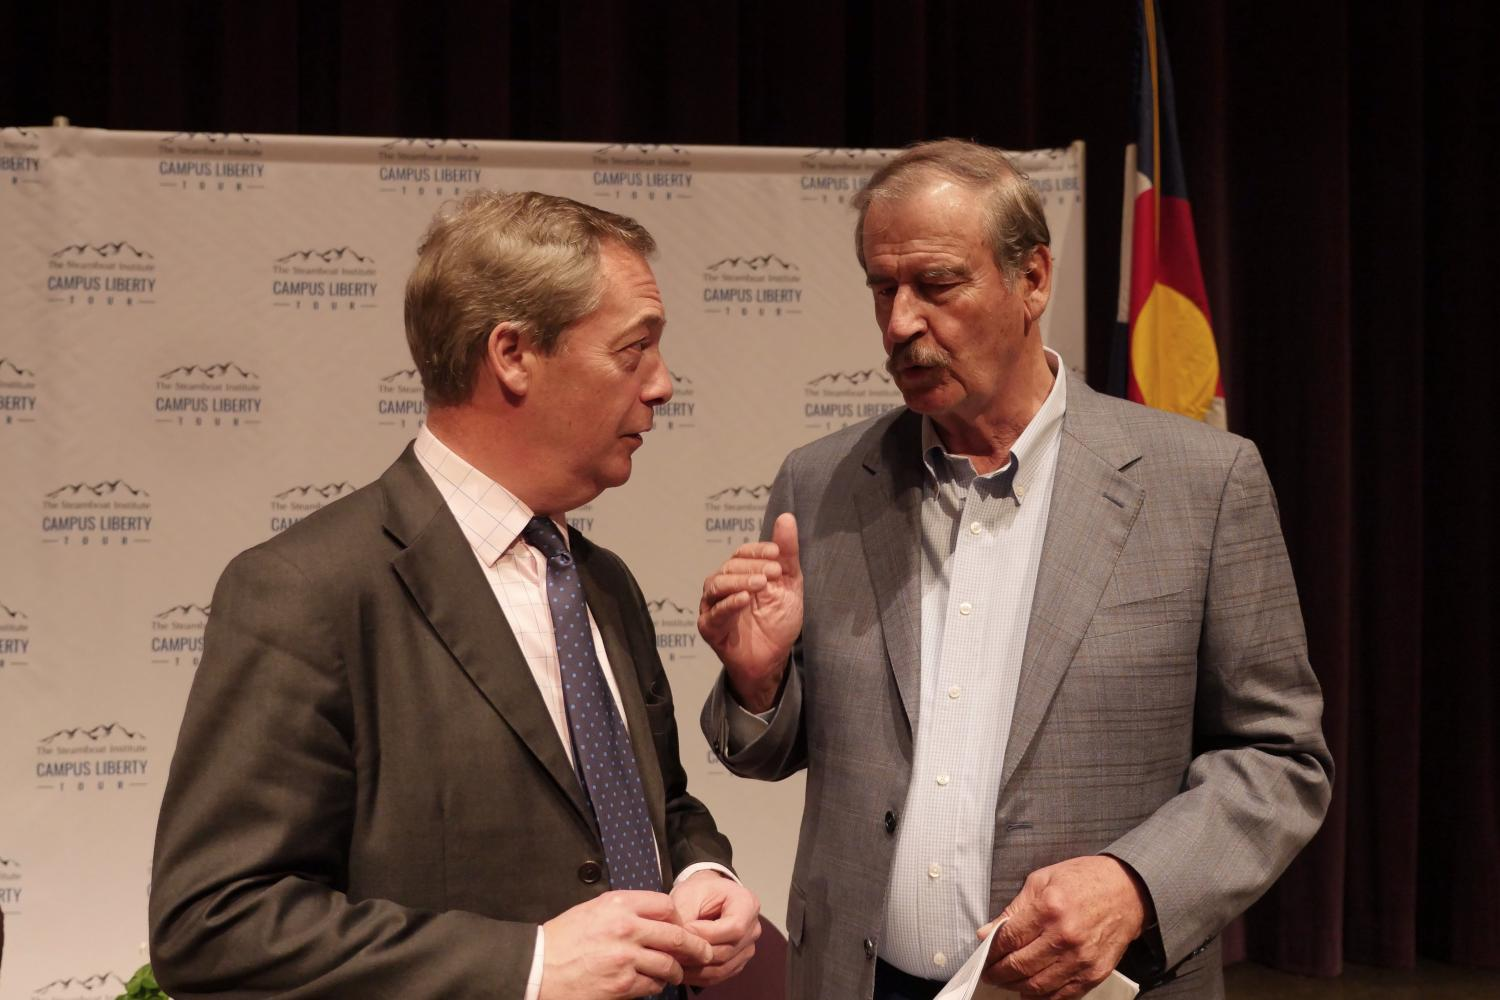 Brexit architect Nigel Farage, left, and former Mexican President Vincente Fox